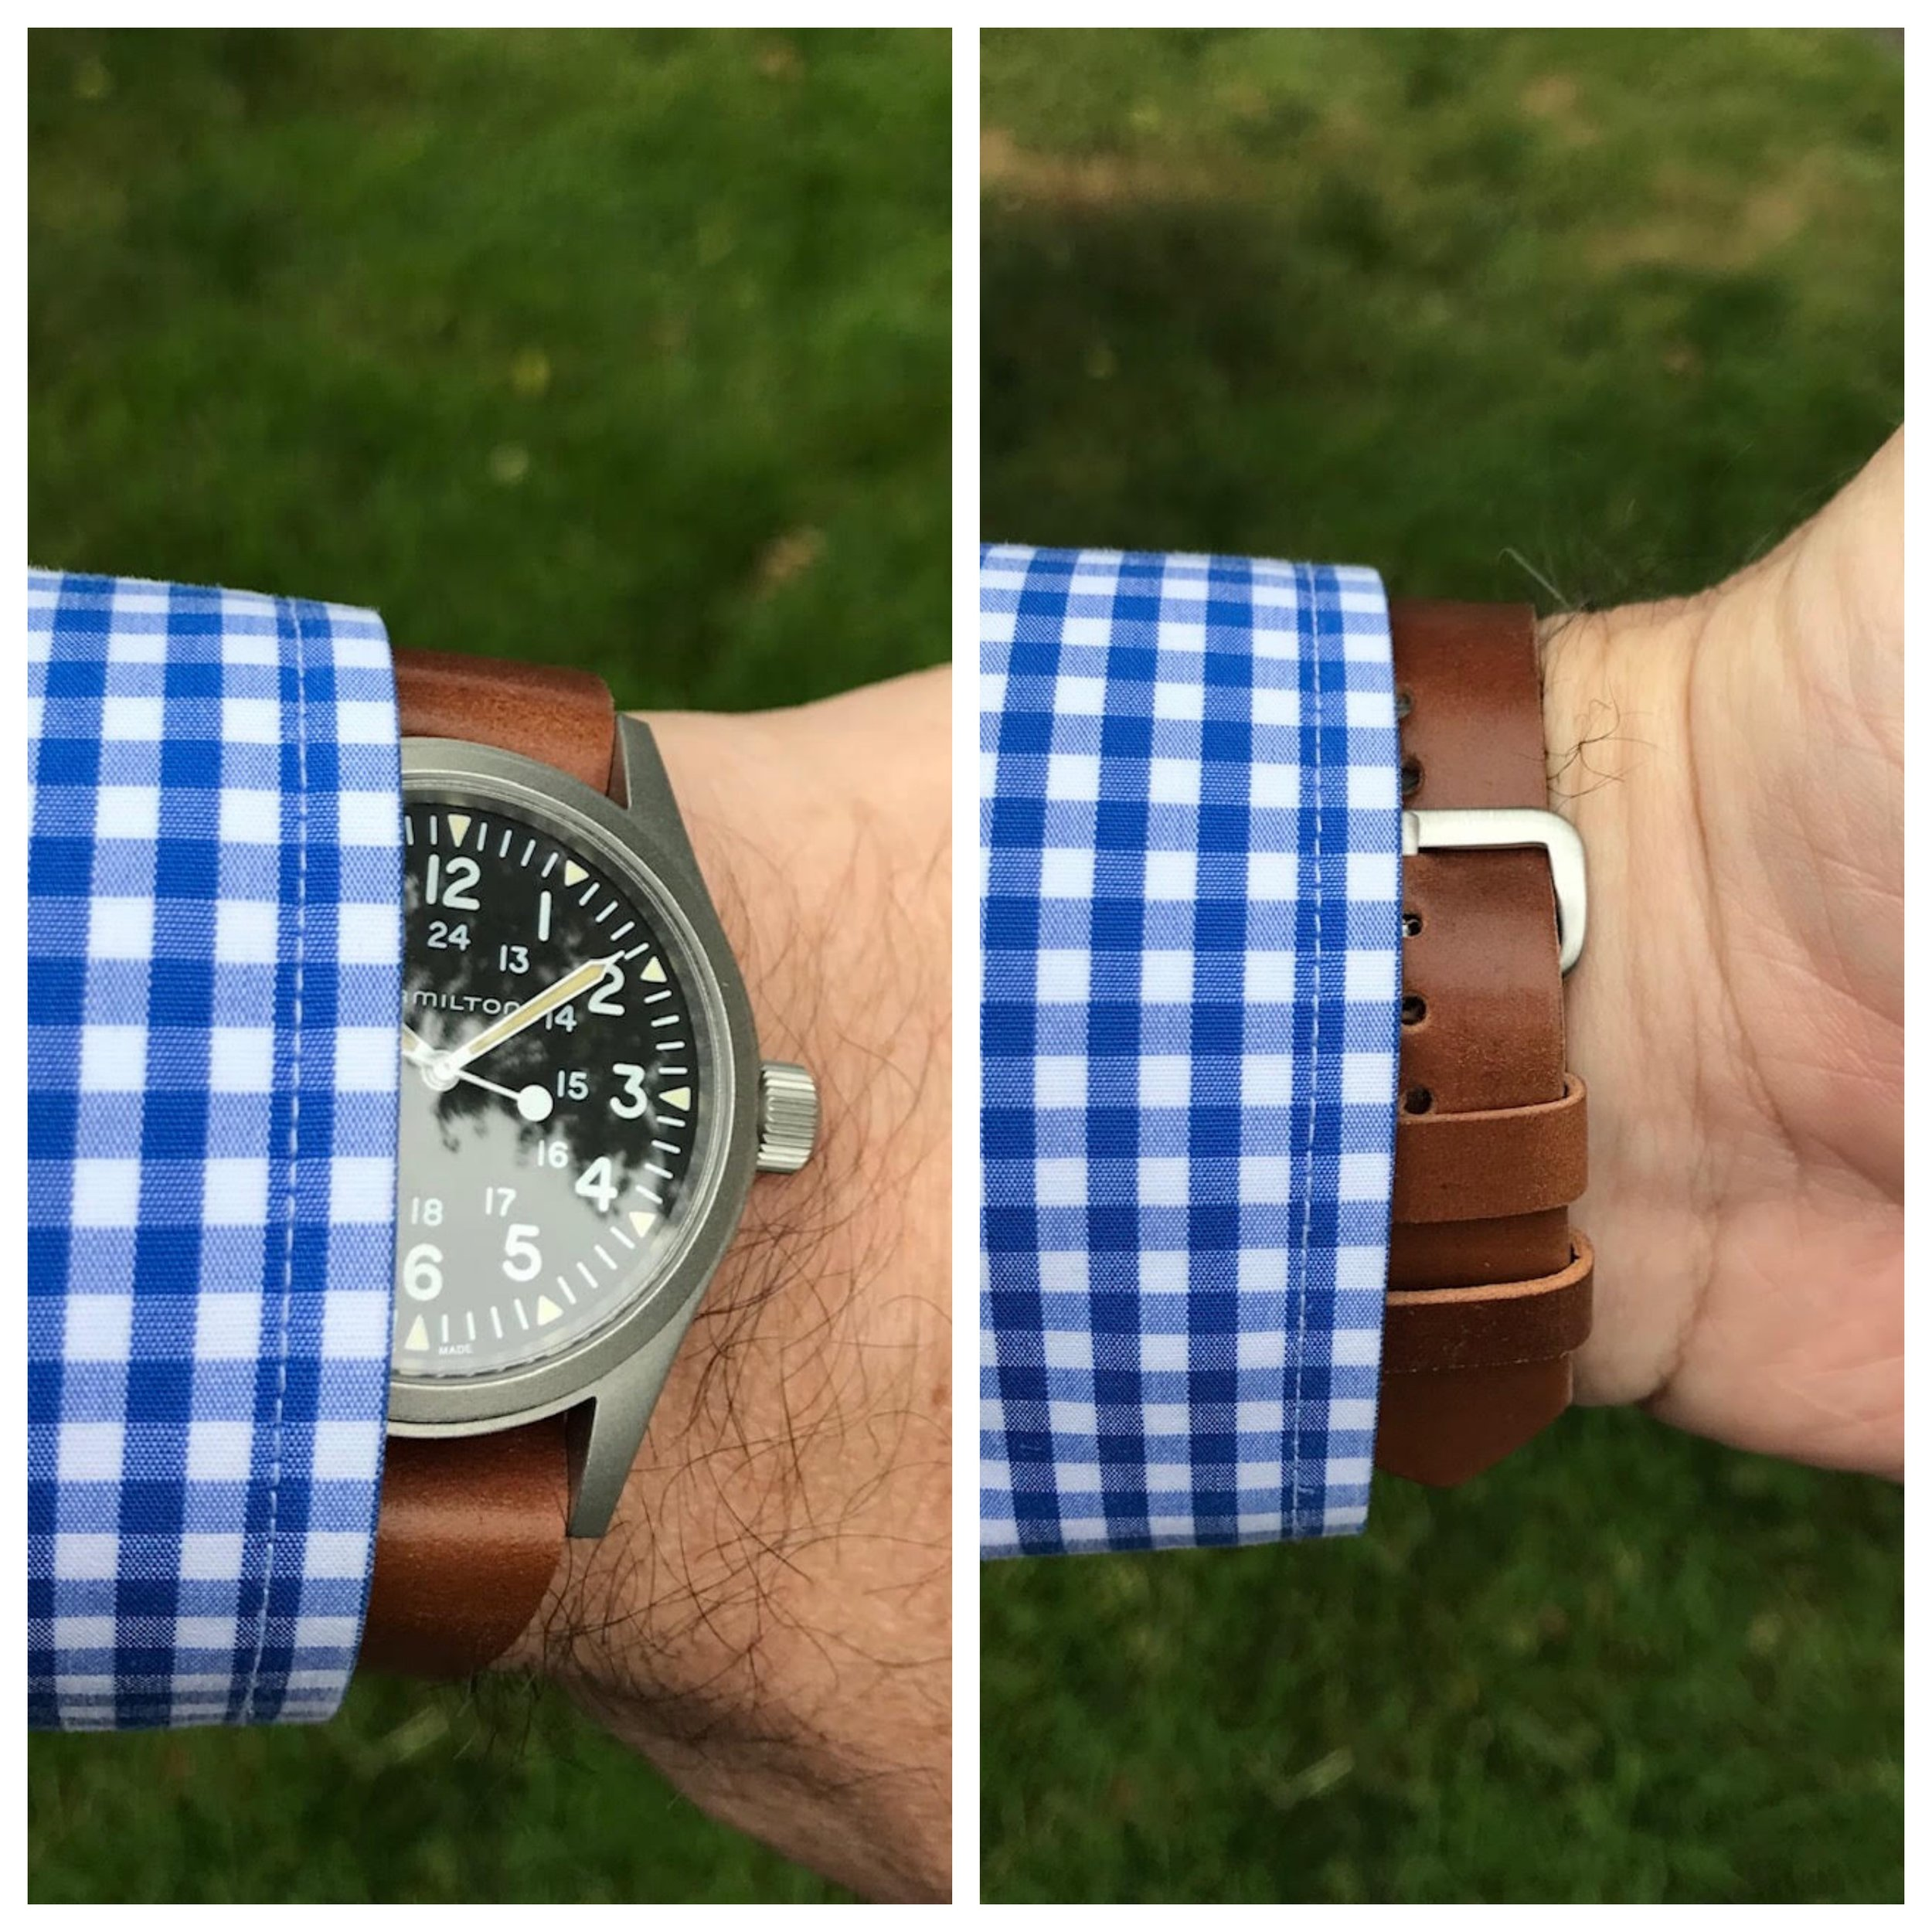 Beautiful Hamilton field watch on a one-piece with two fixed keepers. This watch and strap combo are a Rover Haven favorite!